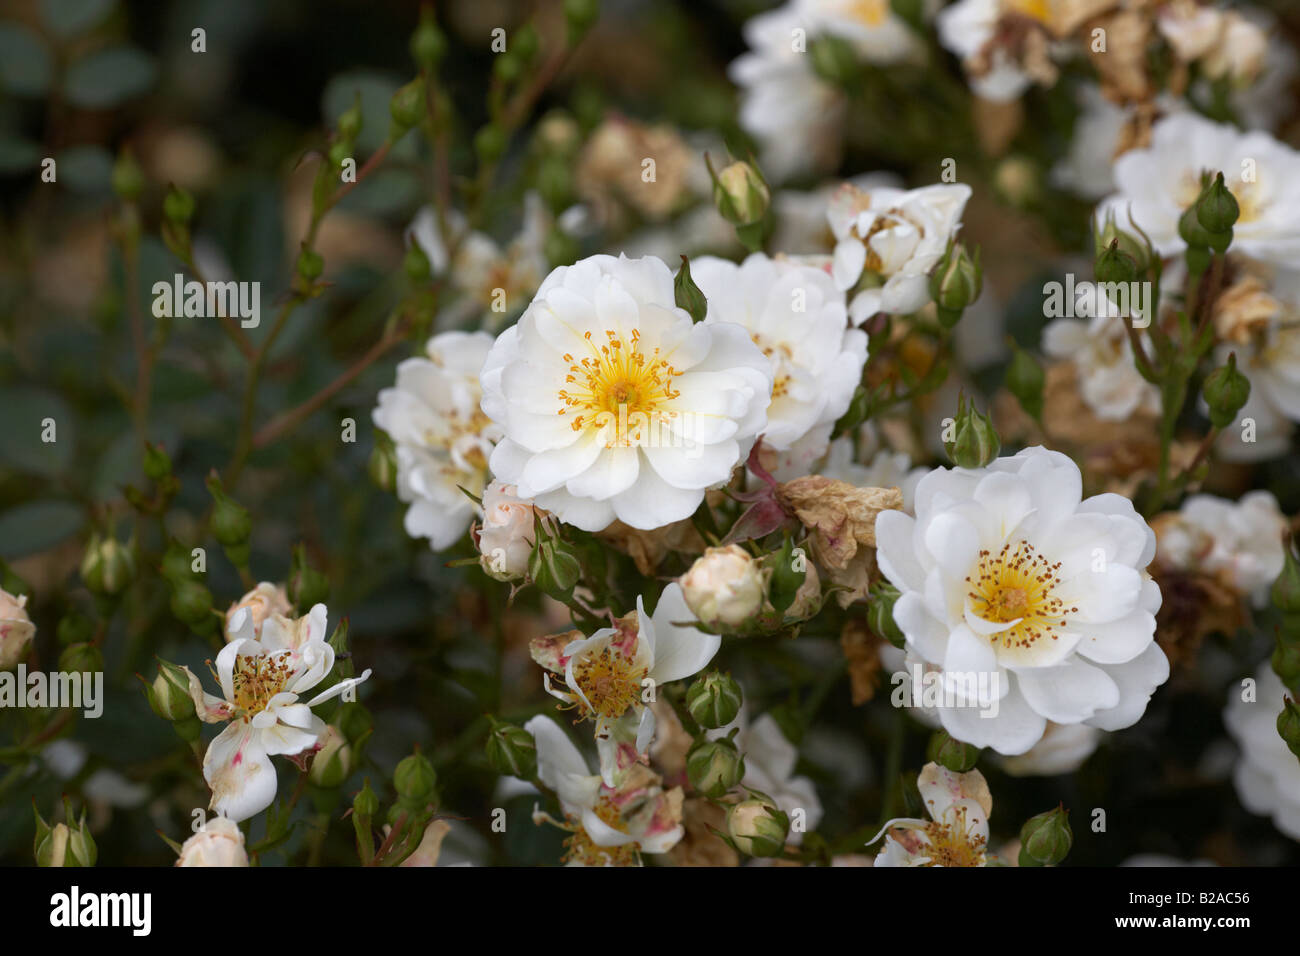 newly wed dicwhynot mini groundcover white flowering rose - Stock Image